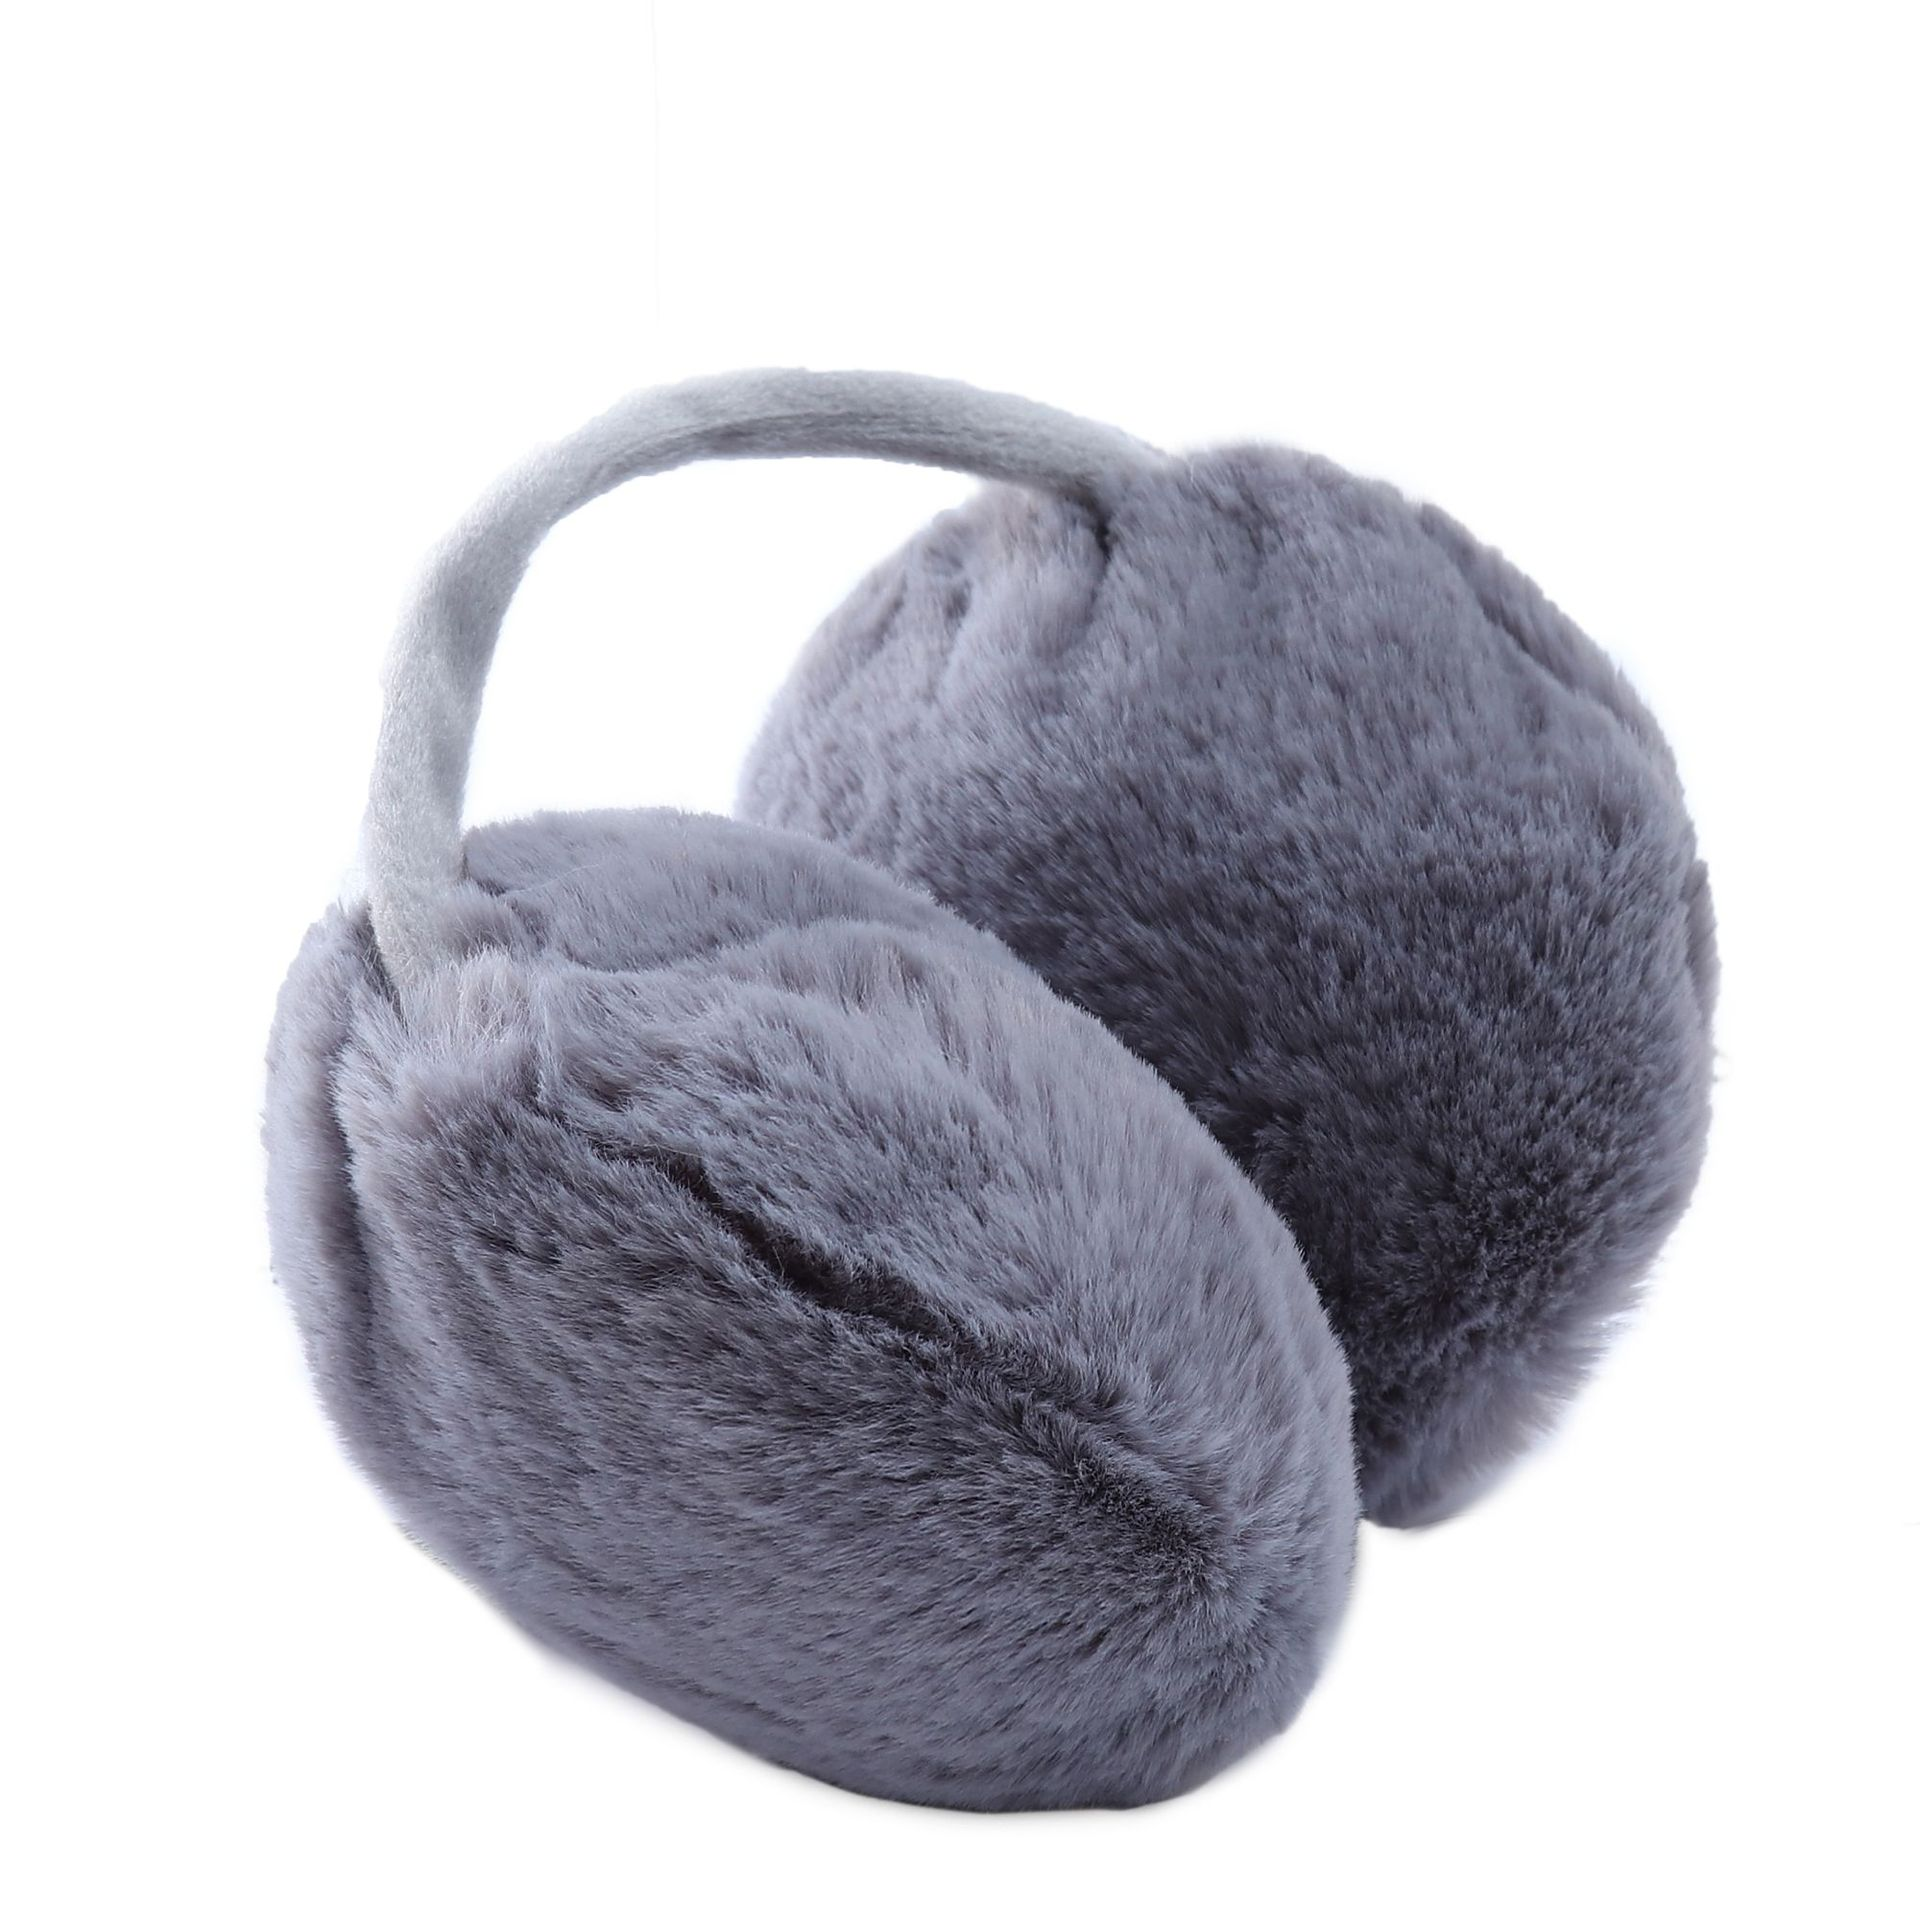 New Solid Color Fur Earmuffs For Ladies Autumn And Winter Ear Warmer And Comfortable Unisex Ski Headphones Casque Ear Muffs Cute